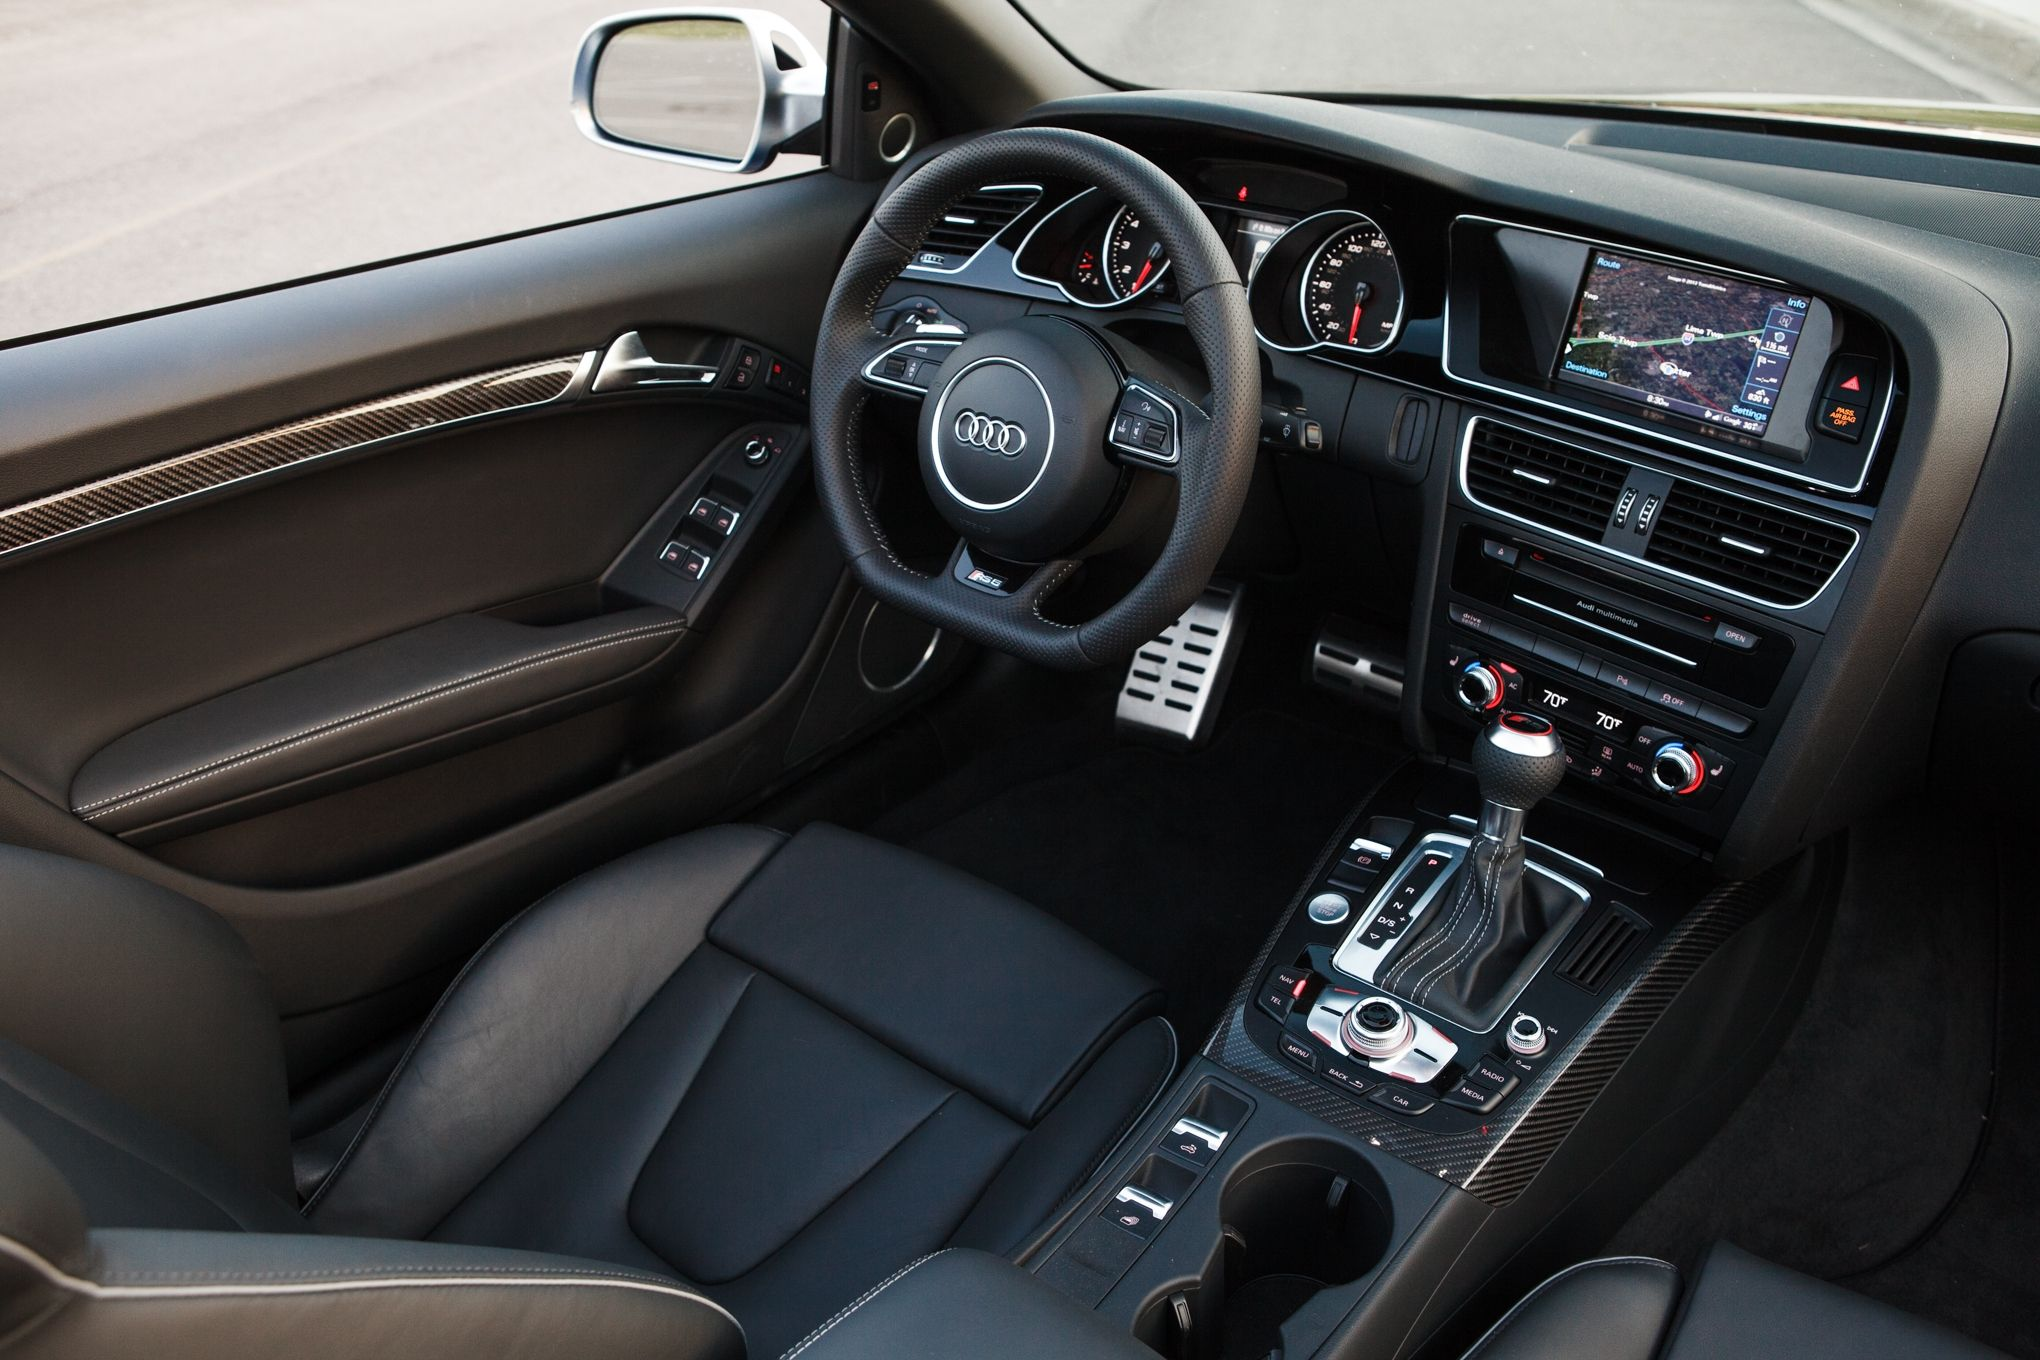 audi s5 convertible interior 266 stuff to buy pinterest audi s5 convertible and cars. Black Bedroom Furniture Sets. Home Design Ideas